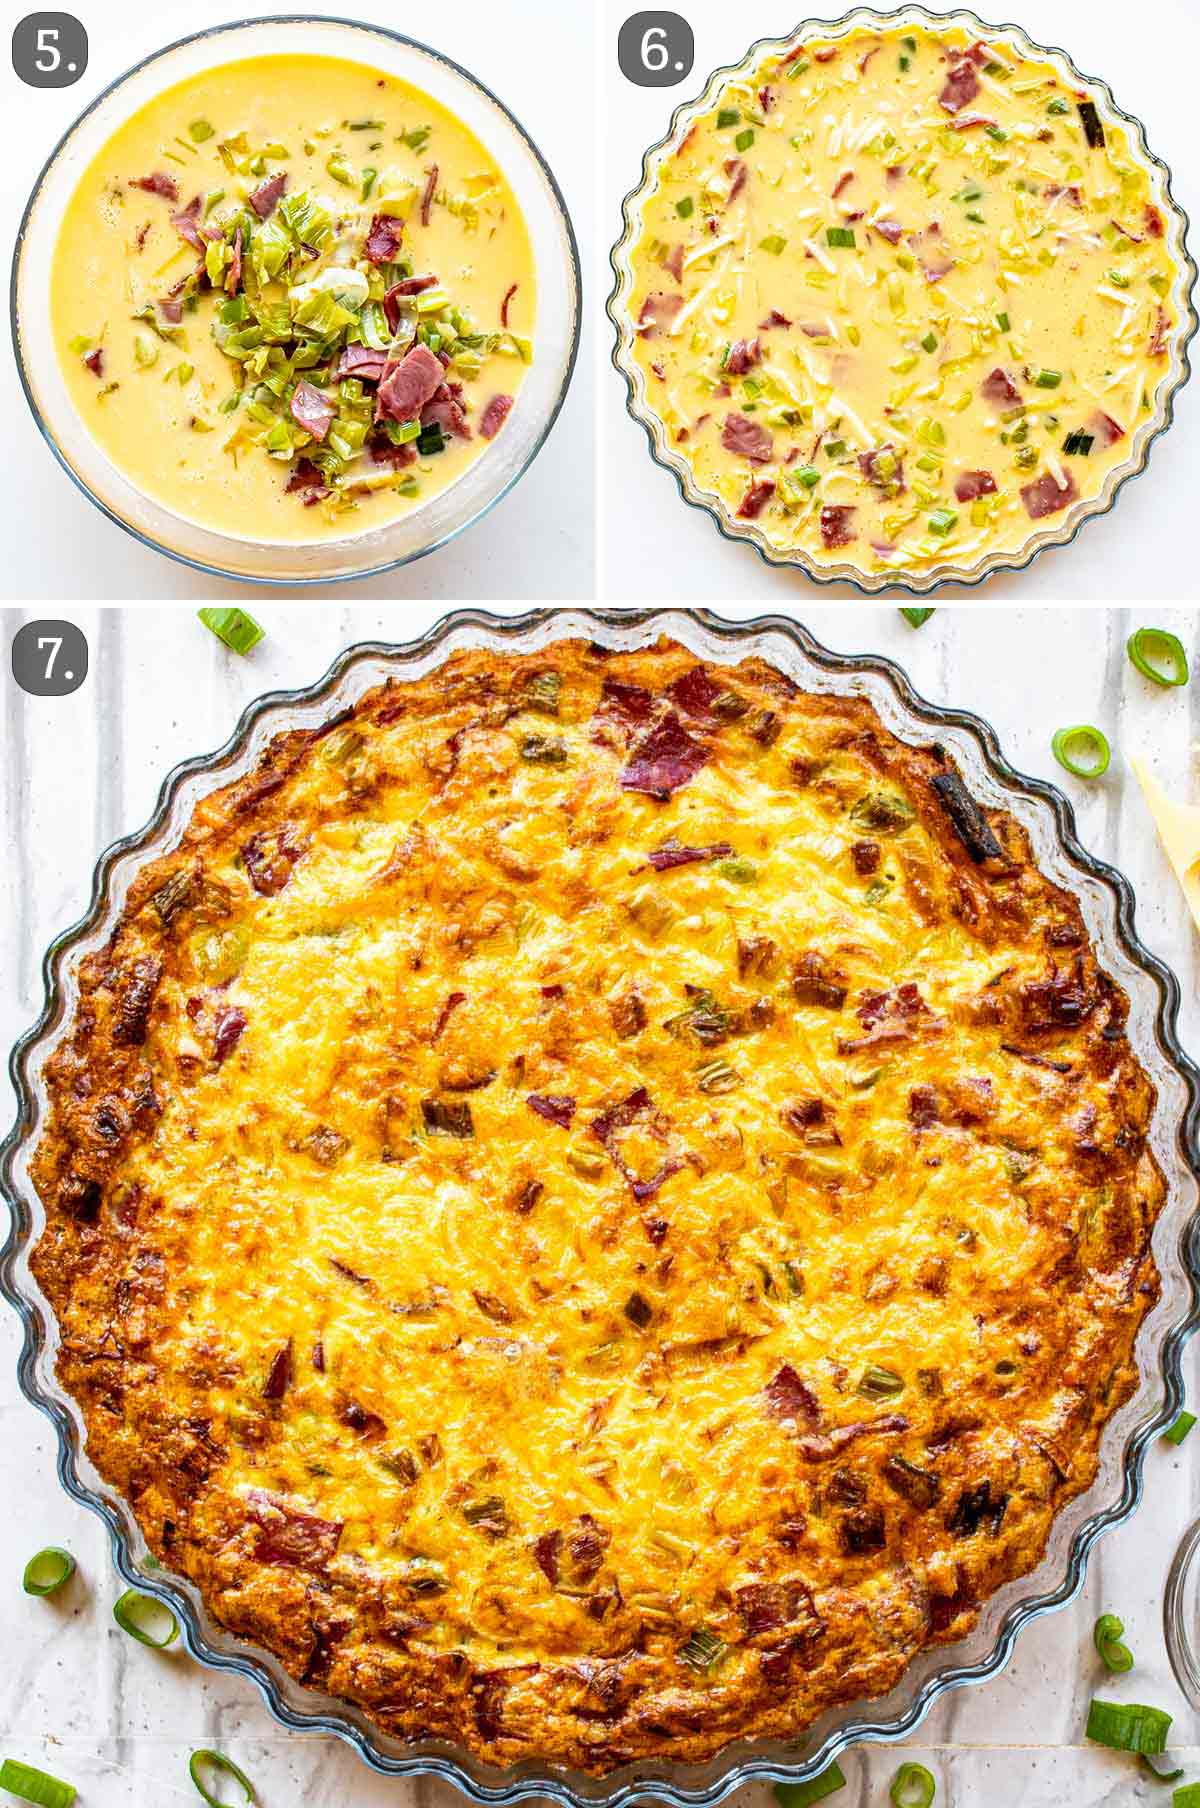 process shots showing how to bake crustless quiche.